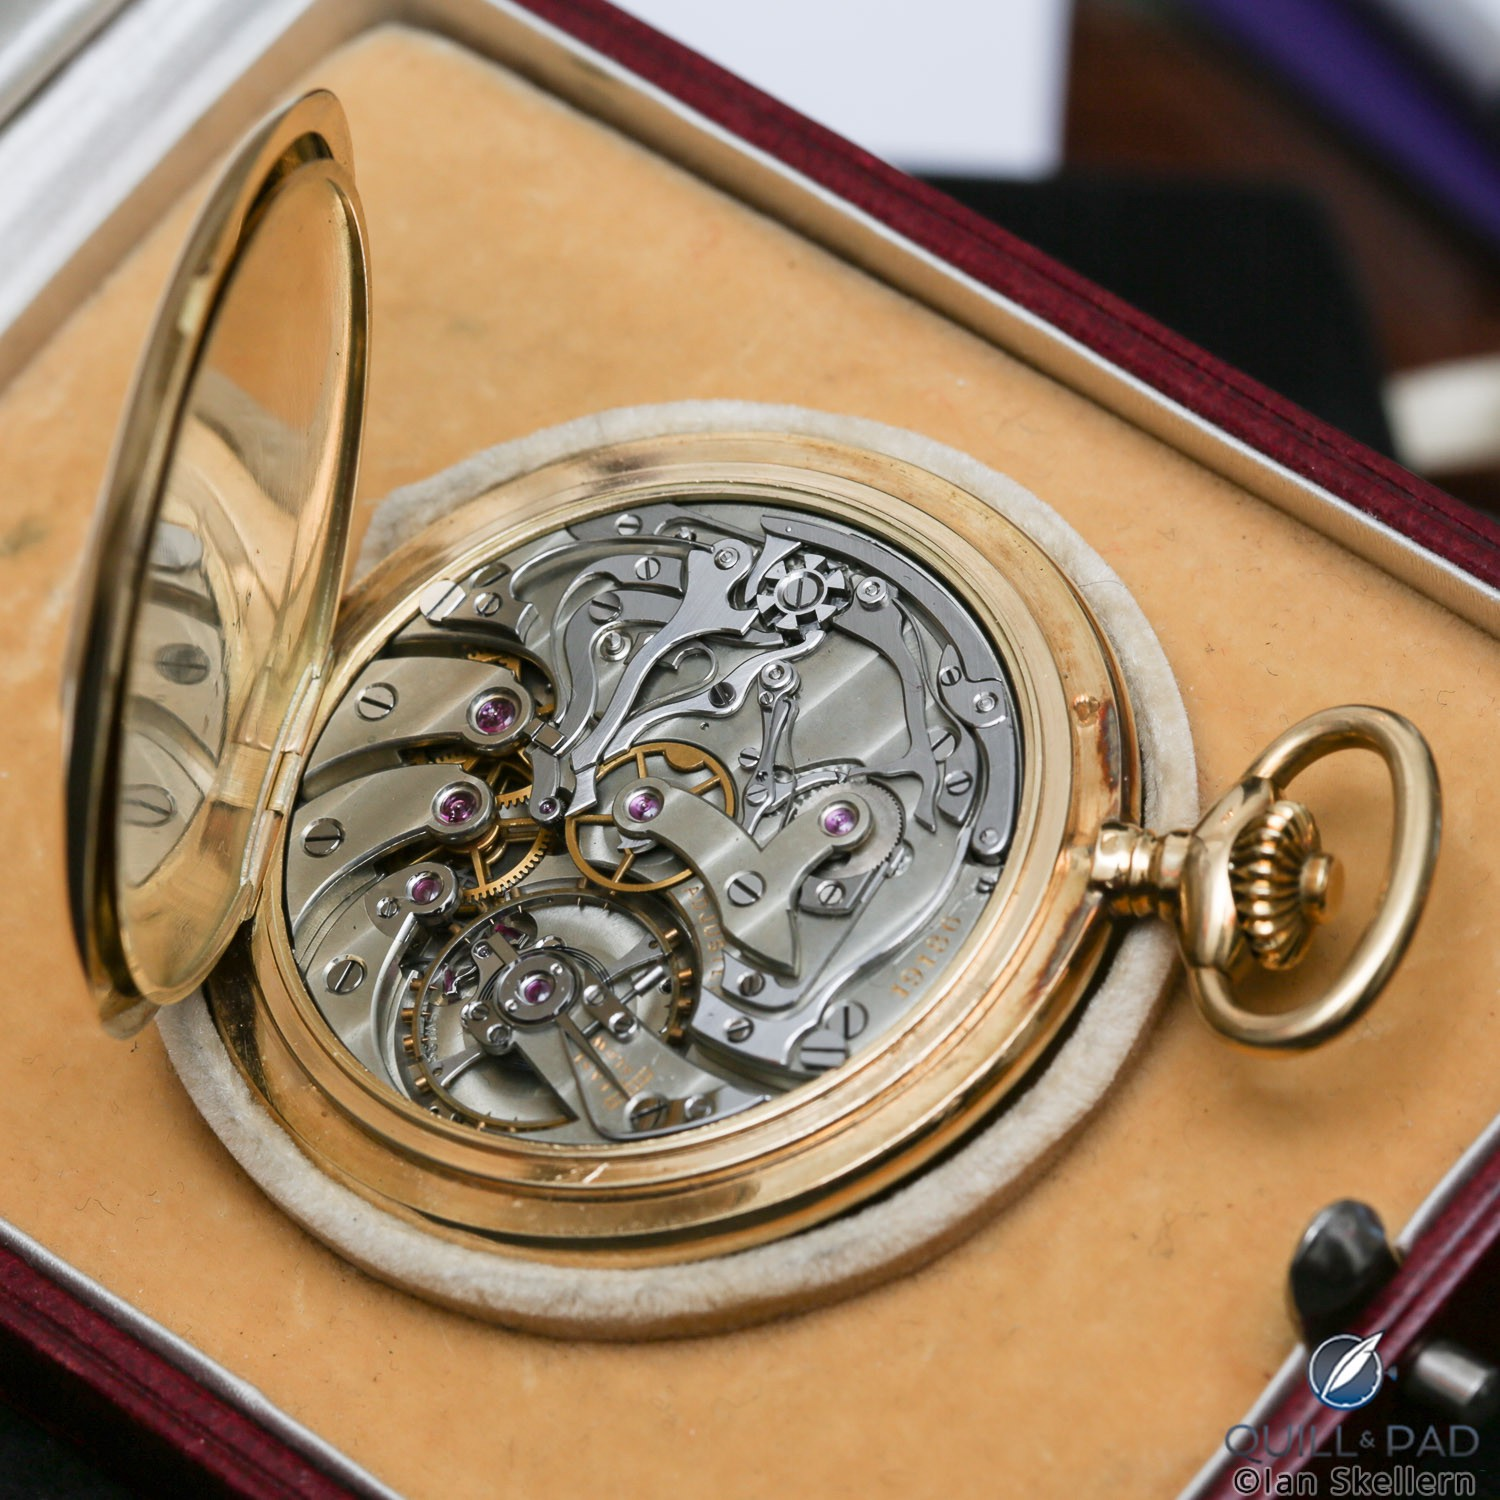 The movement of a Poitevin-LeJeune pocket watch chronograph from Gerd-Rüdiger Lang's extensive chronograph collection